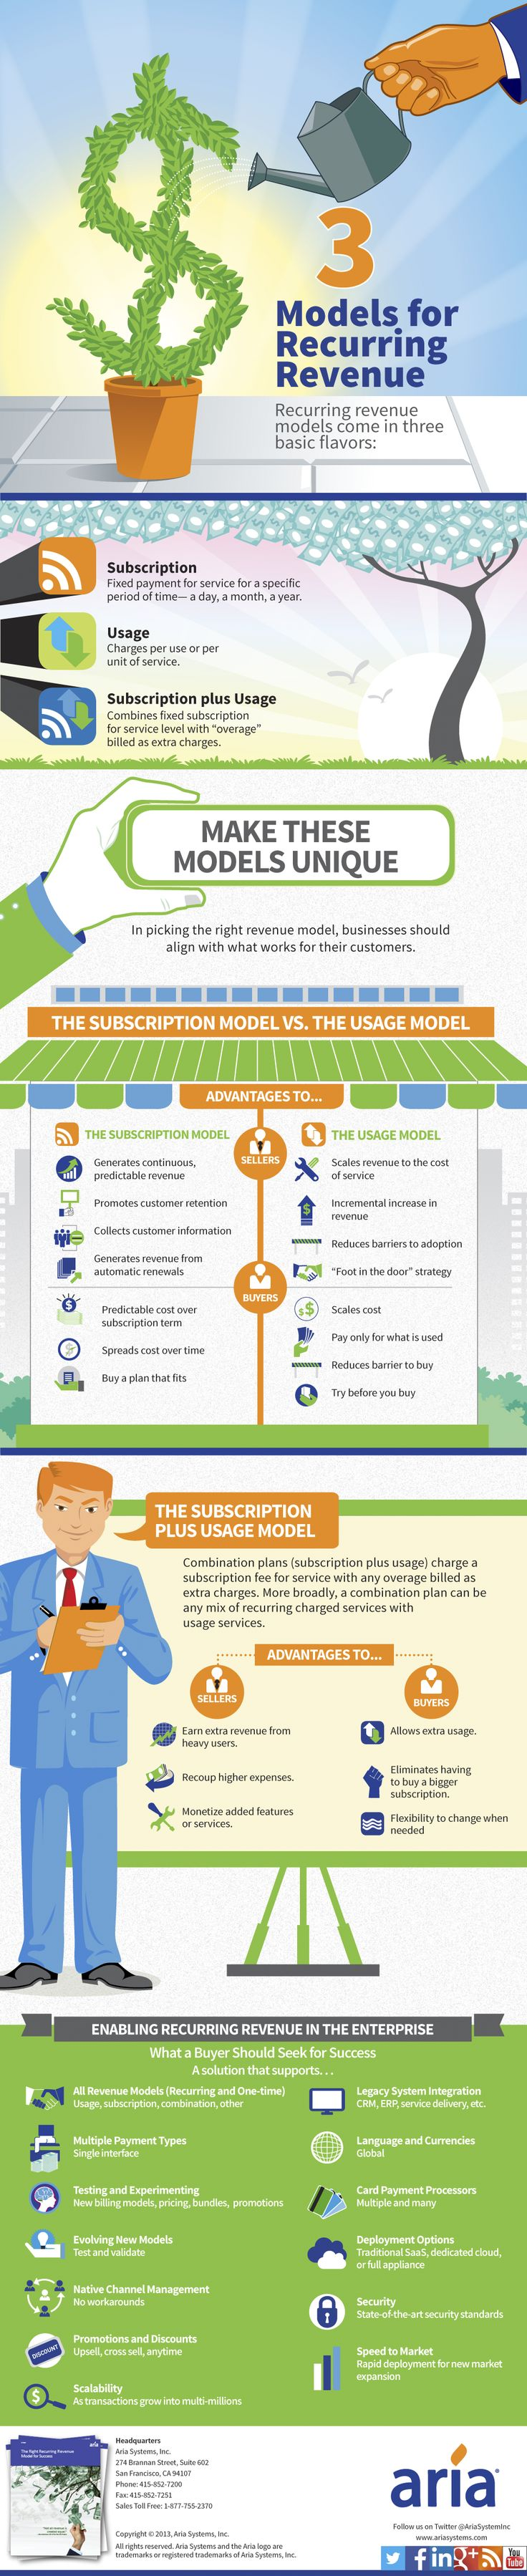 3 Recurring Revenue Models for Success #infographic #business #billing #cloud